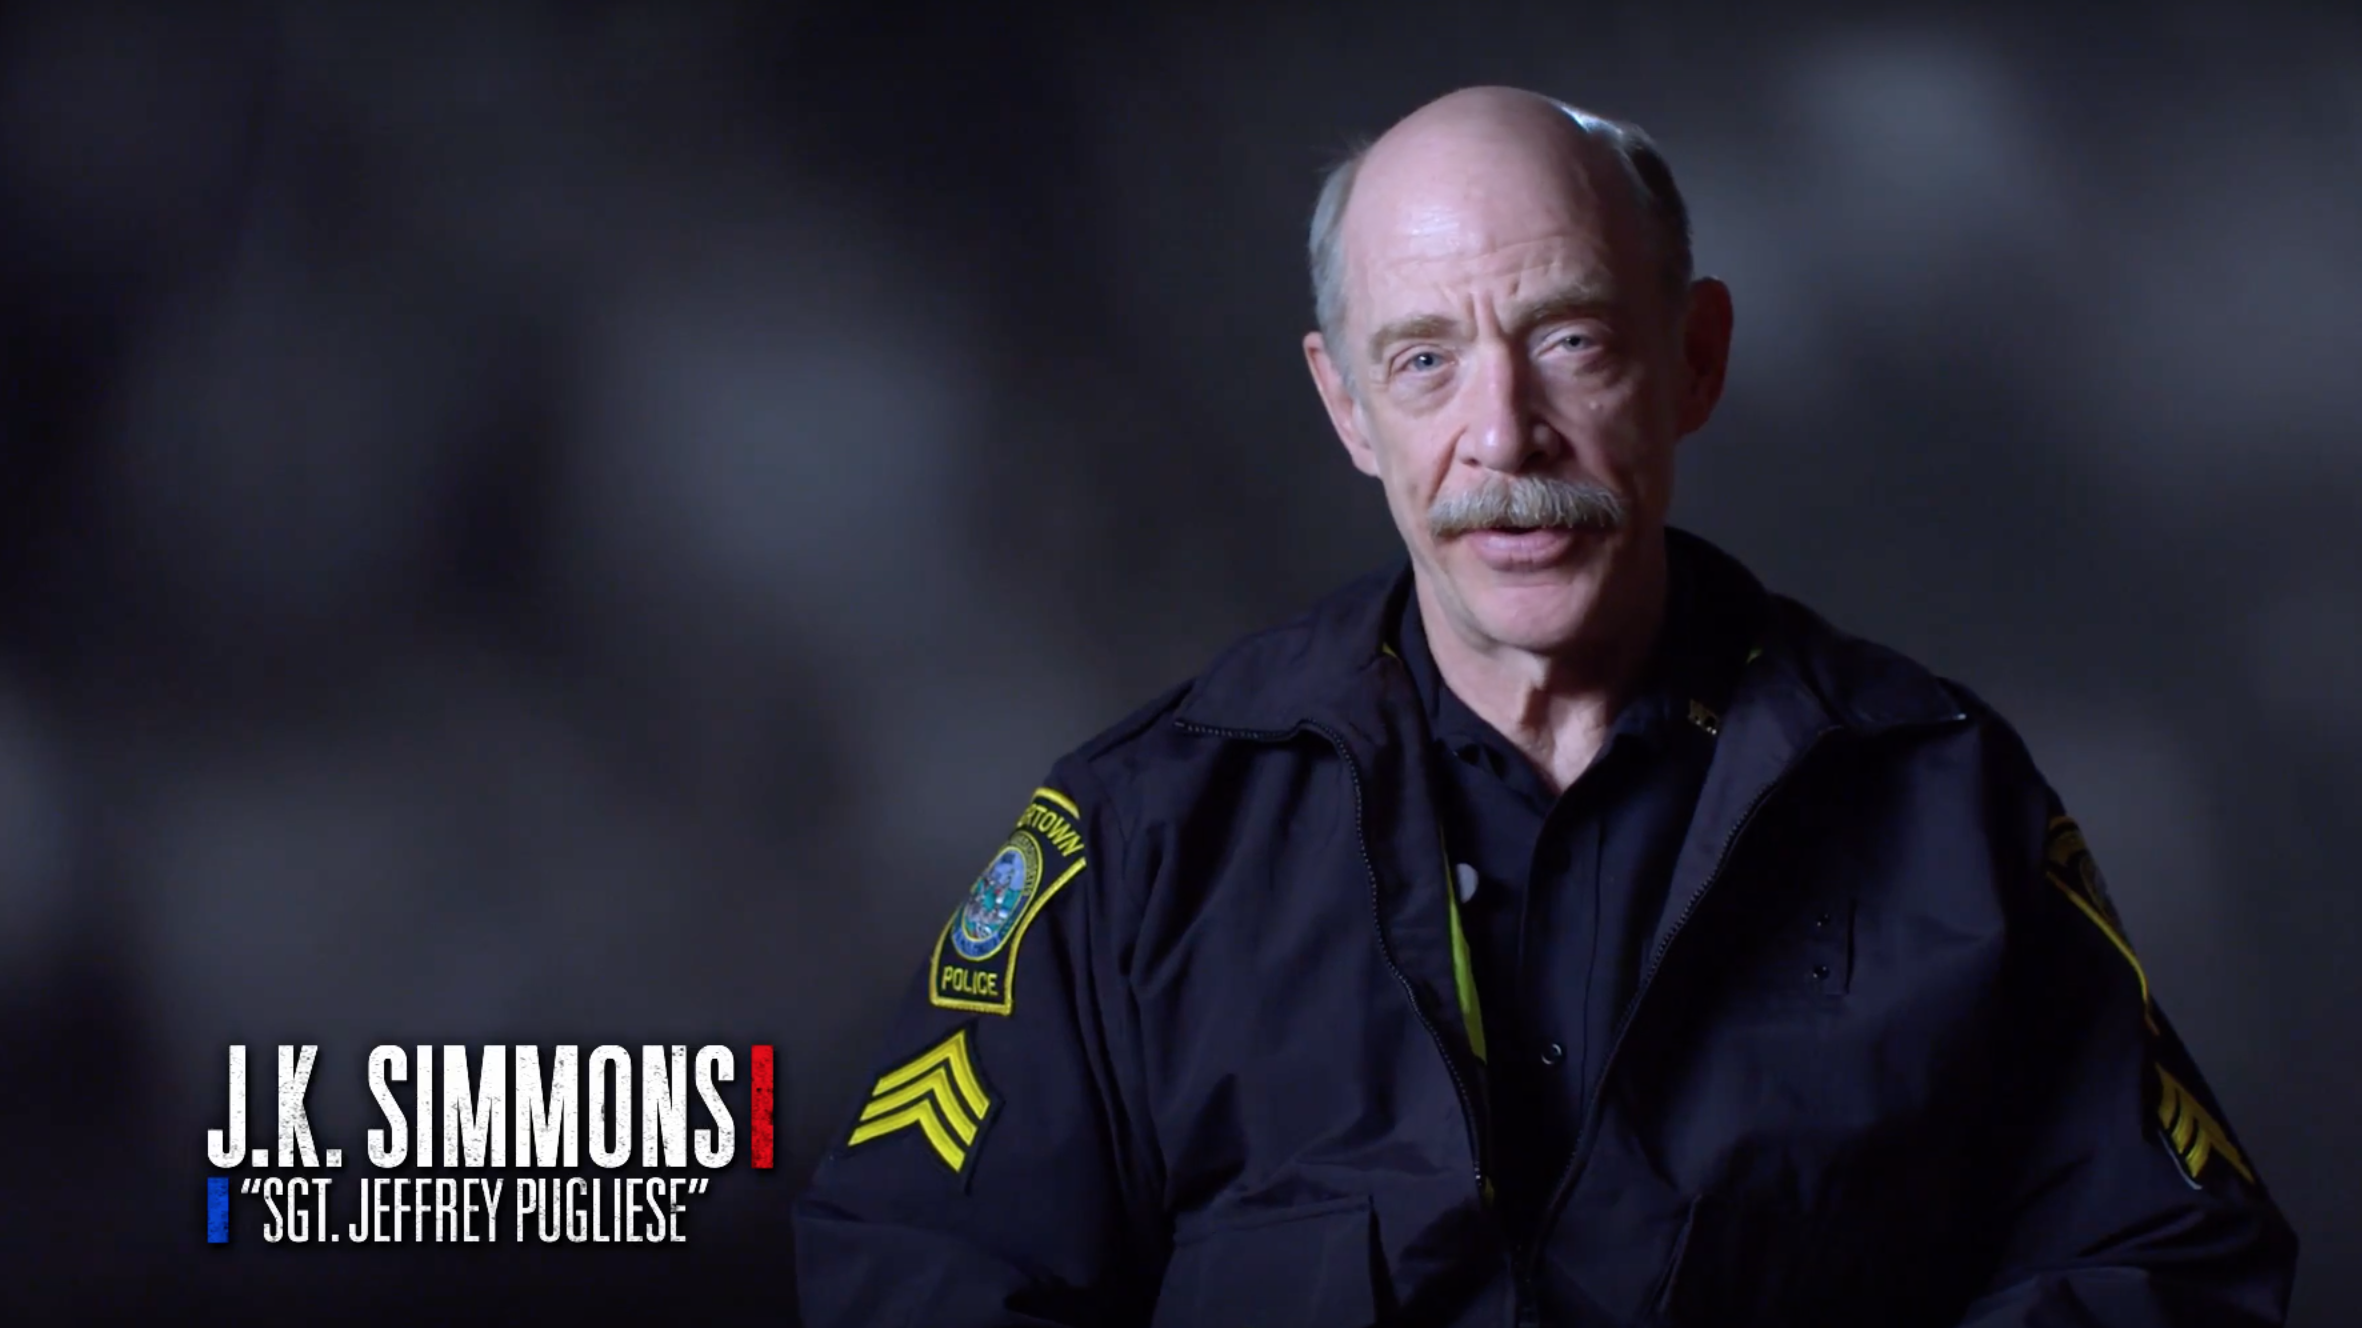 J.K. Simmons in New 'Patriots Day' Featurette